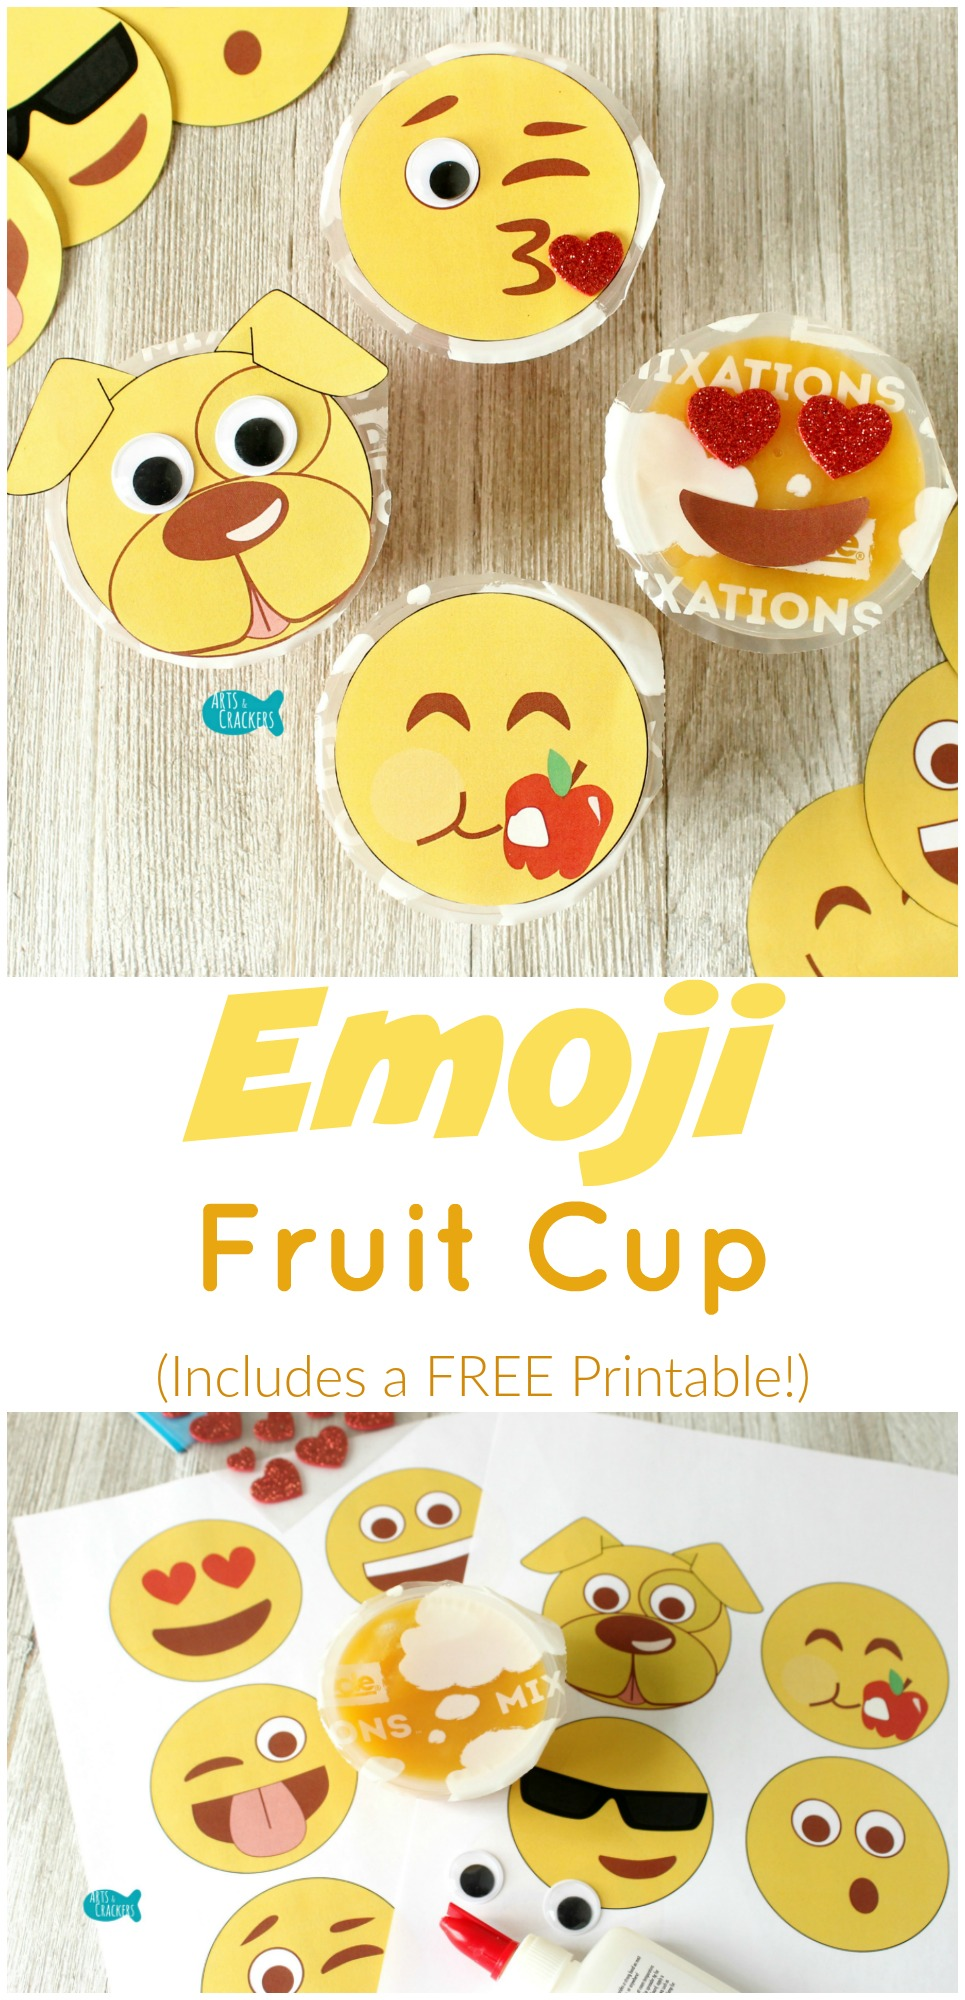 picture about Printable Emoji Faces titled Emoji Fruit Cup Craft (Additionally a Totally free Printable)